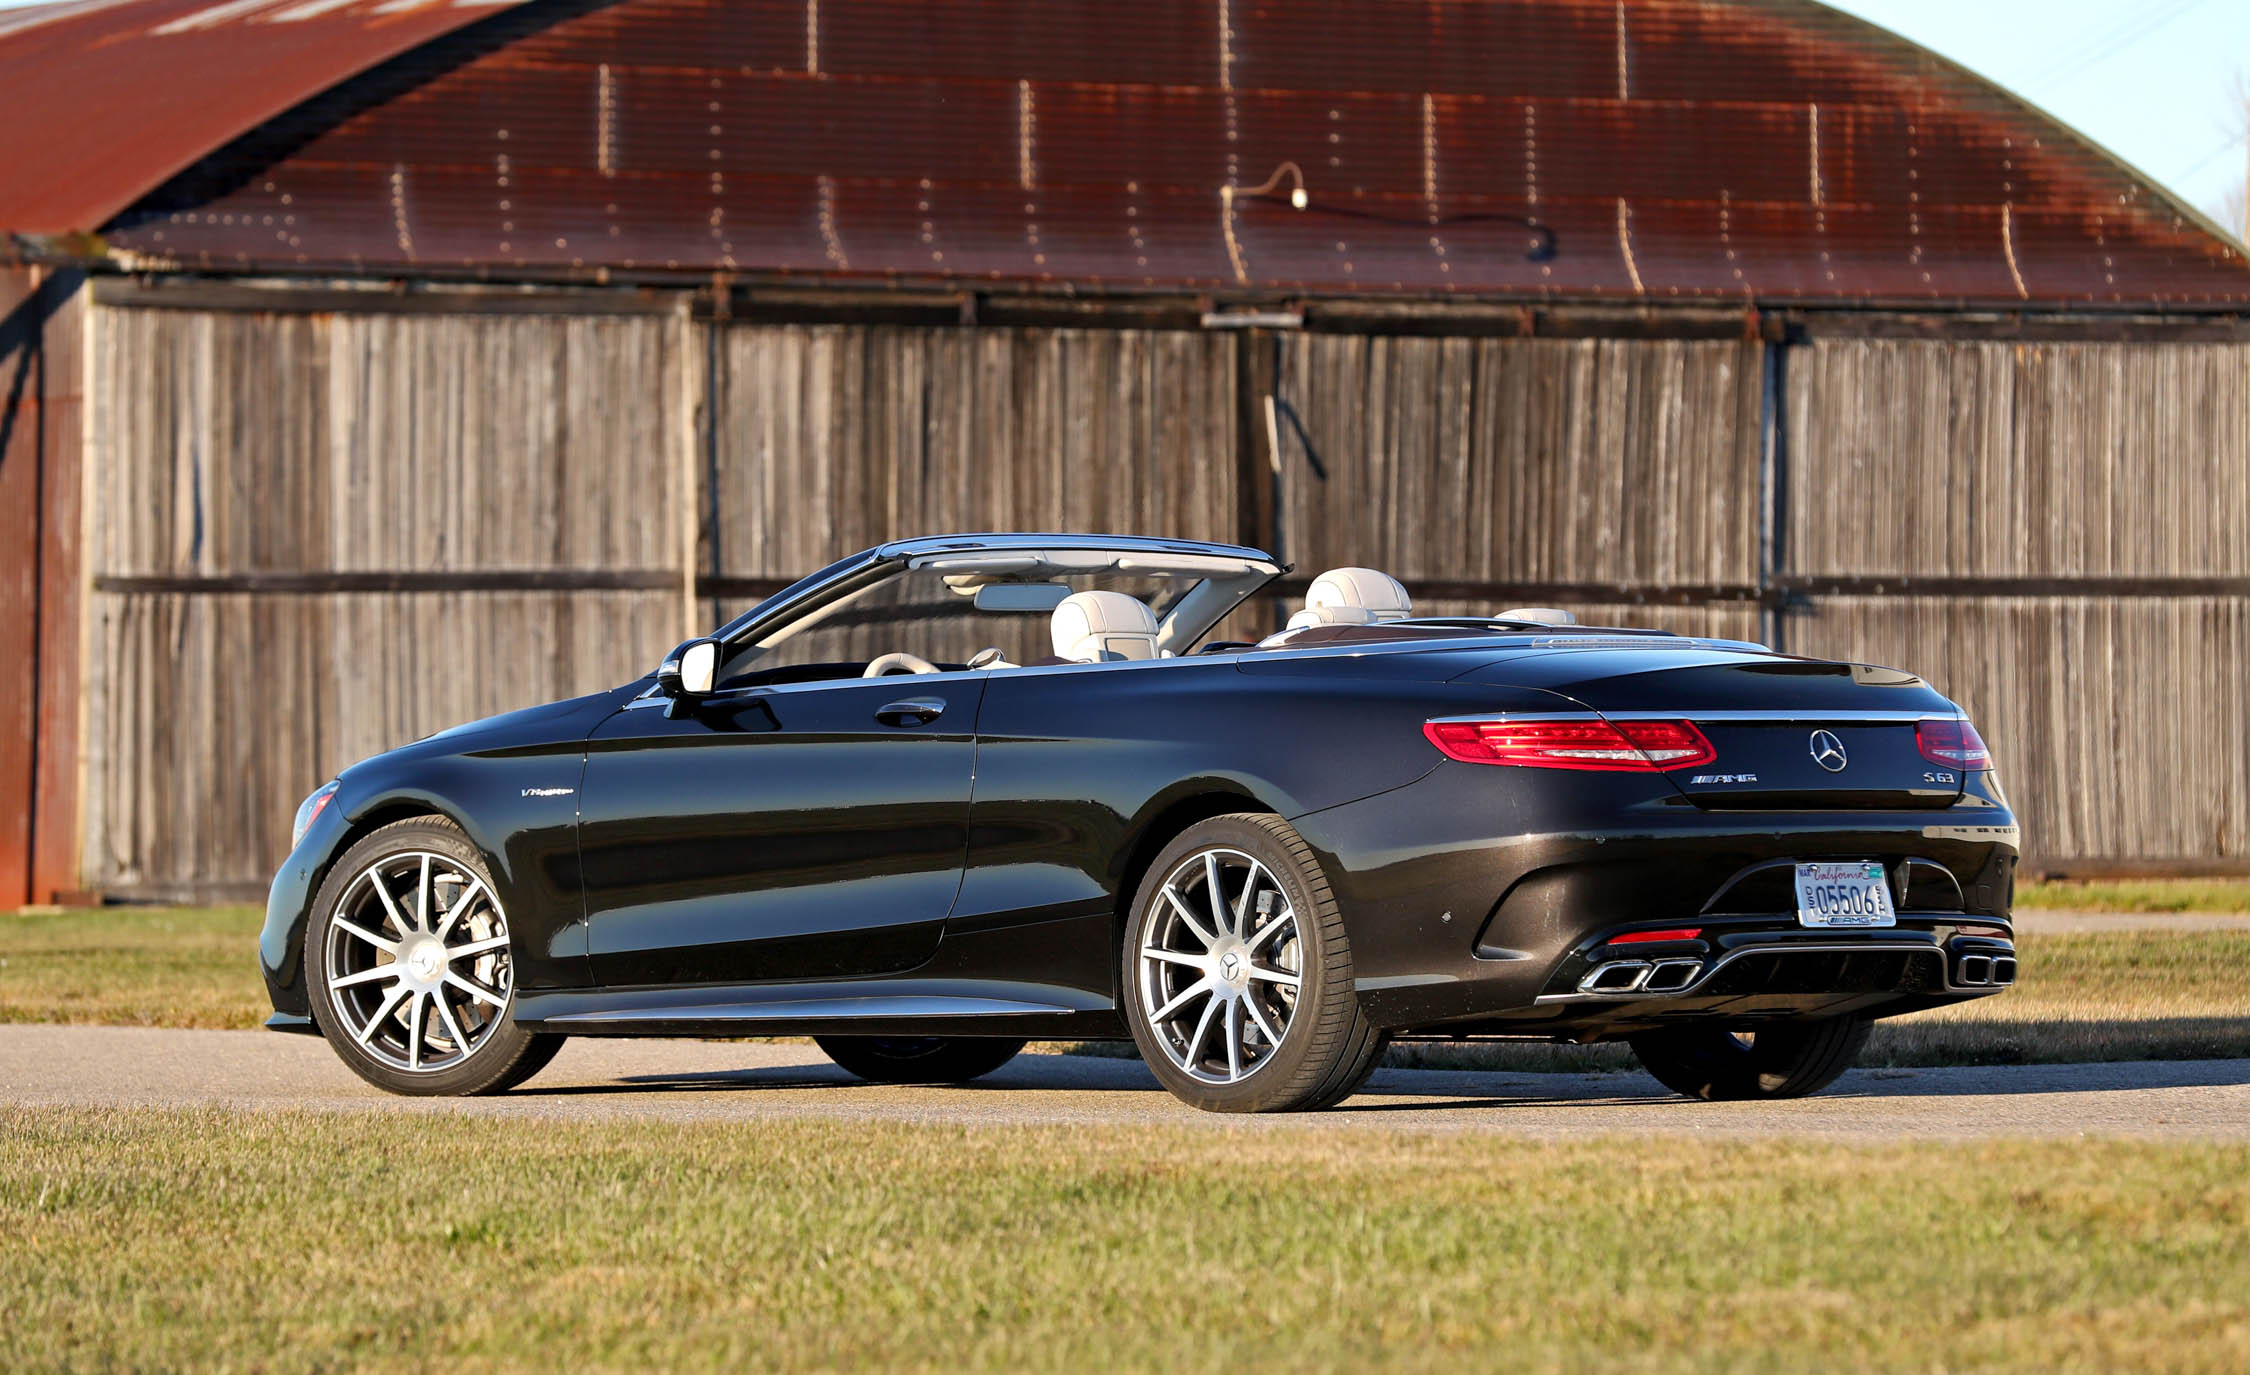 2017 Mercedes Amg S63 Cabriolet Exterior Rear And Side Roof Open (Photo 8 of 38)